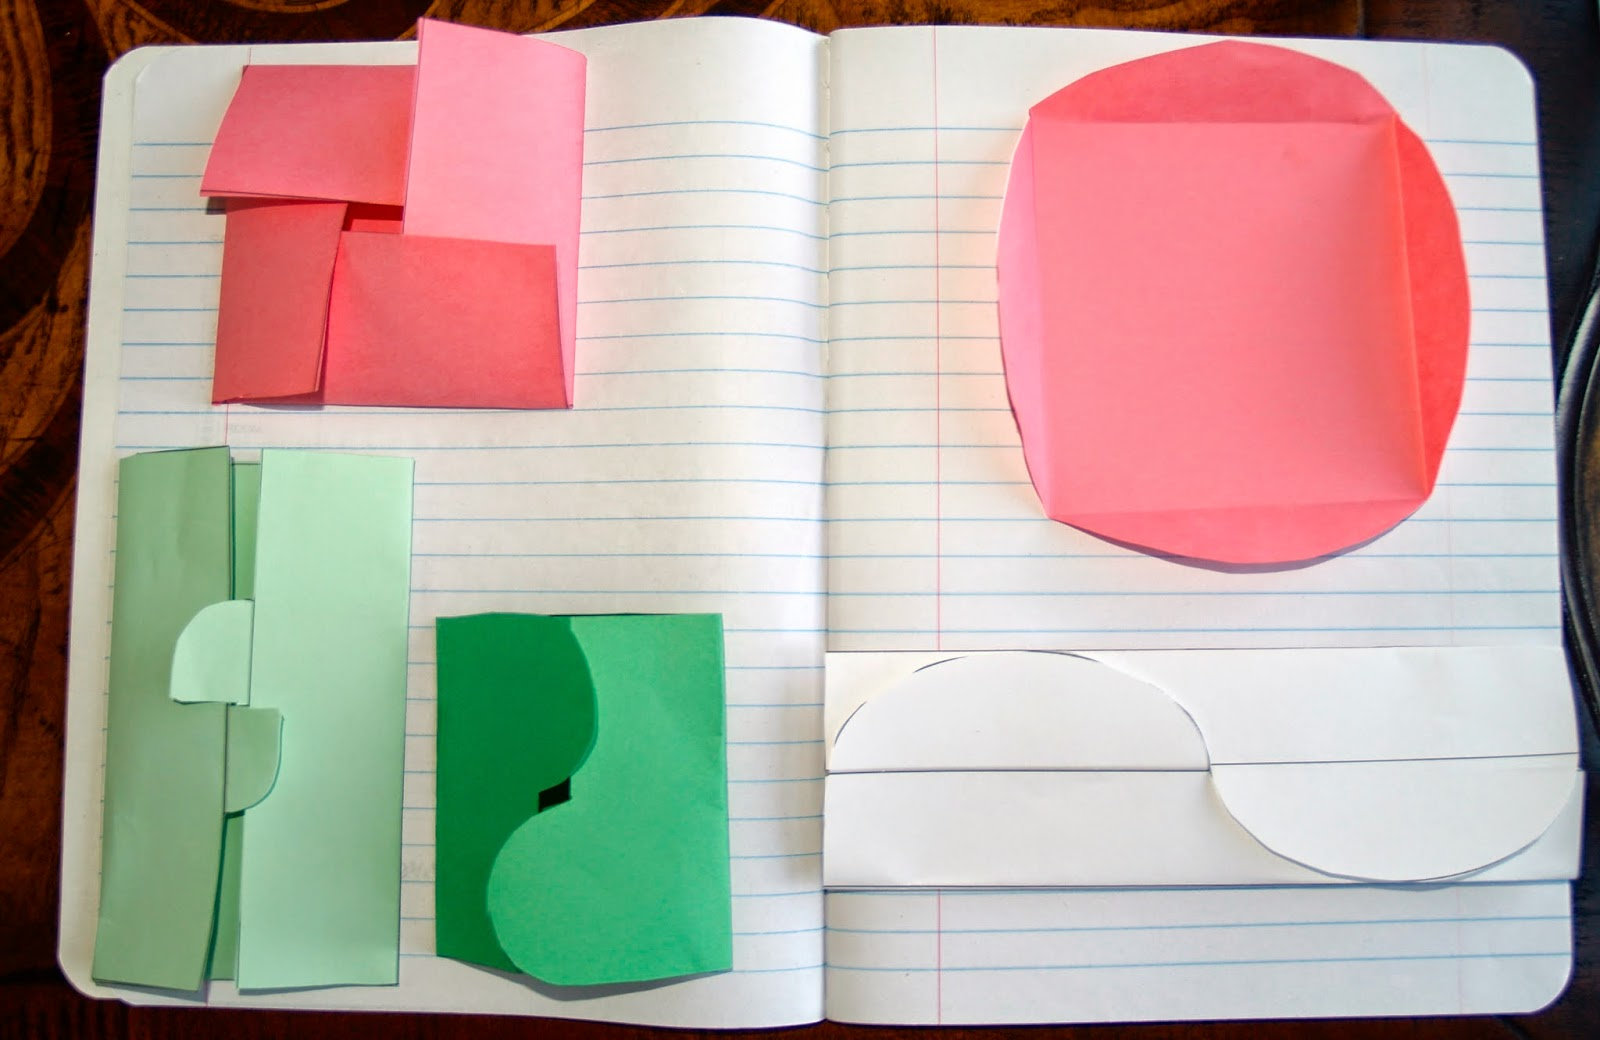 Free+Foldables+For+Teachers ... are some sample uses for interlocking ...